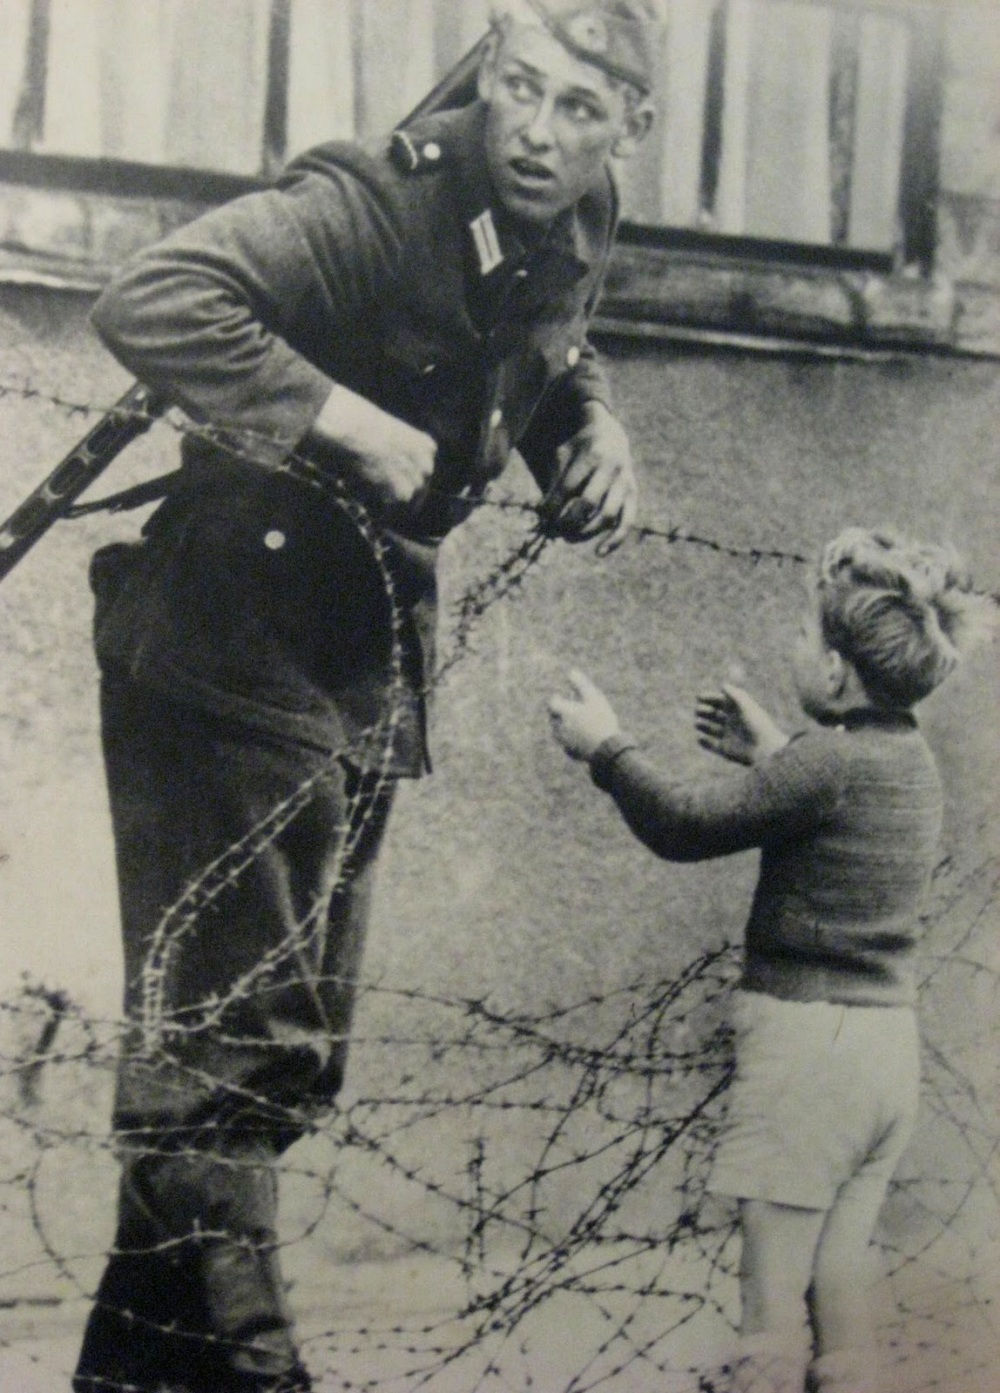 An E. German soldier helps a young boy cross the barbed wire which was a marker for where the Berlin Wall would soon be built.